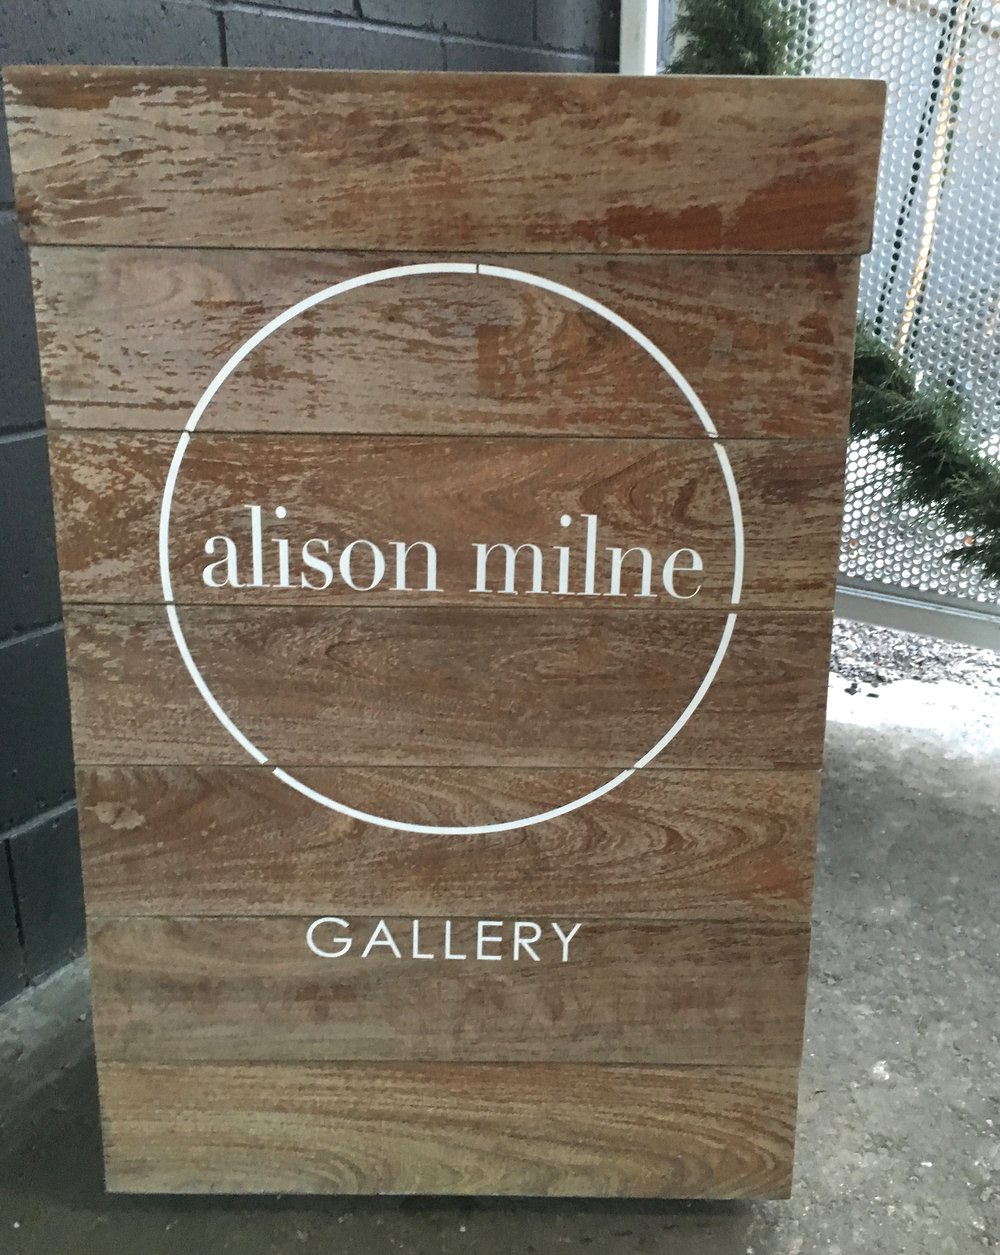 Alison is also an Interior Designer, I was so excited to finally see this stunning space in person.